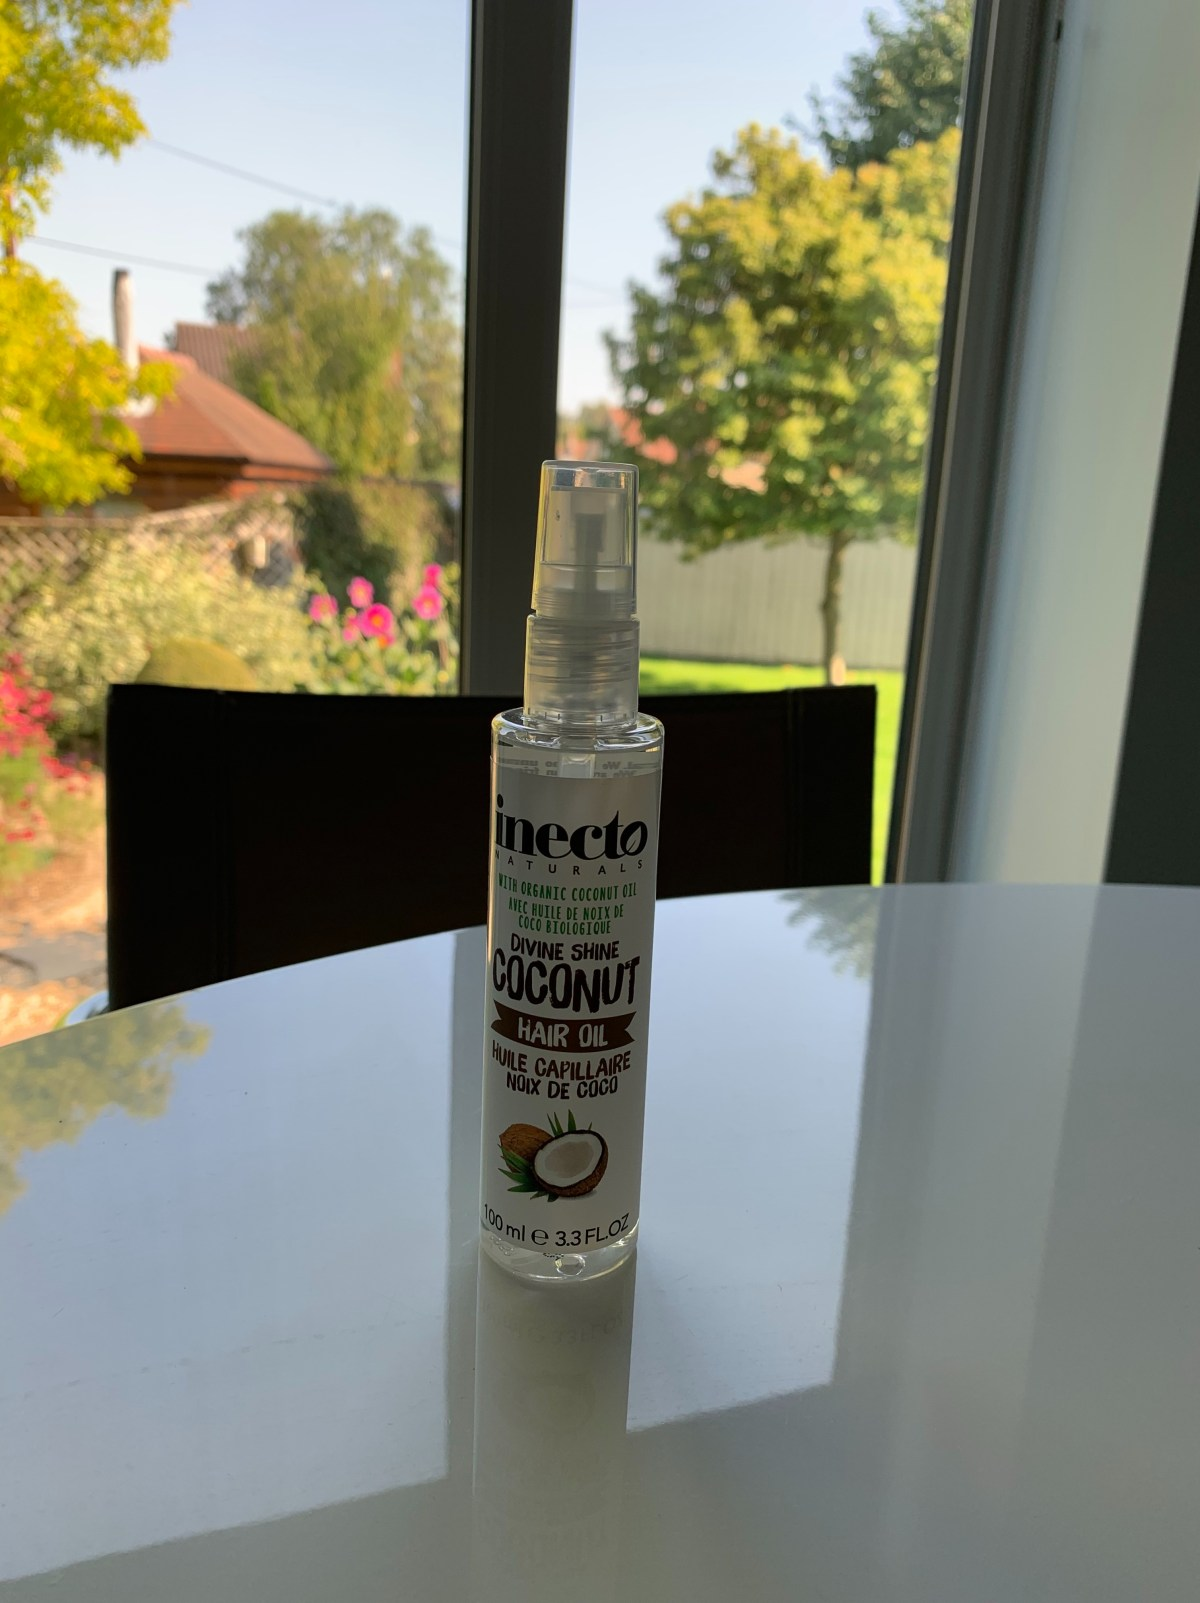 Inecto naturals coconut divine shine hair oil